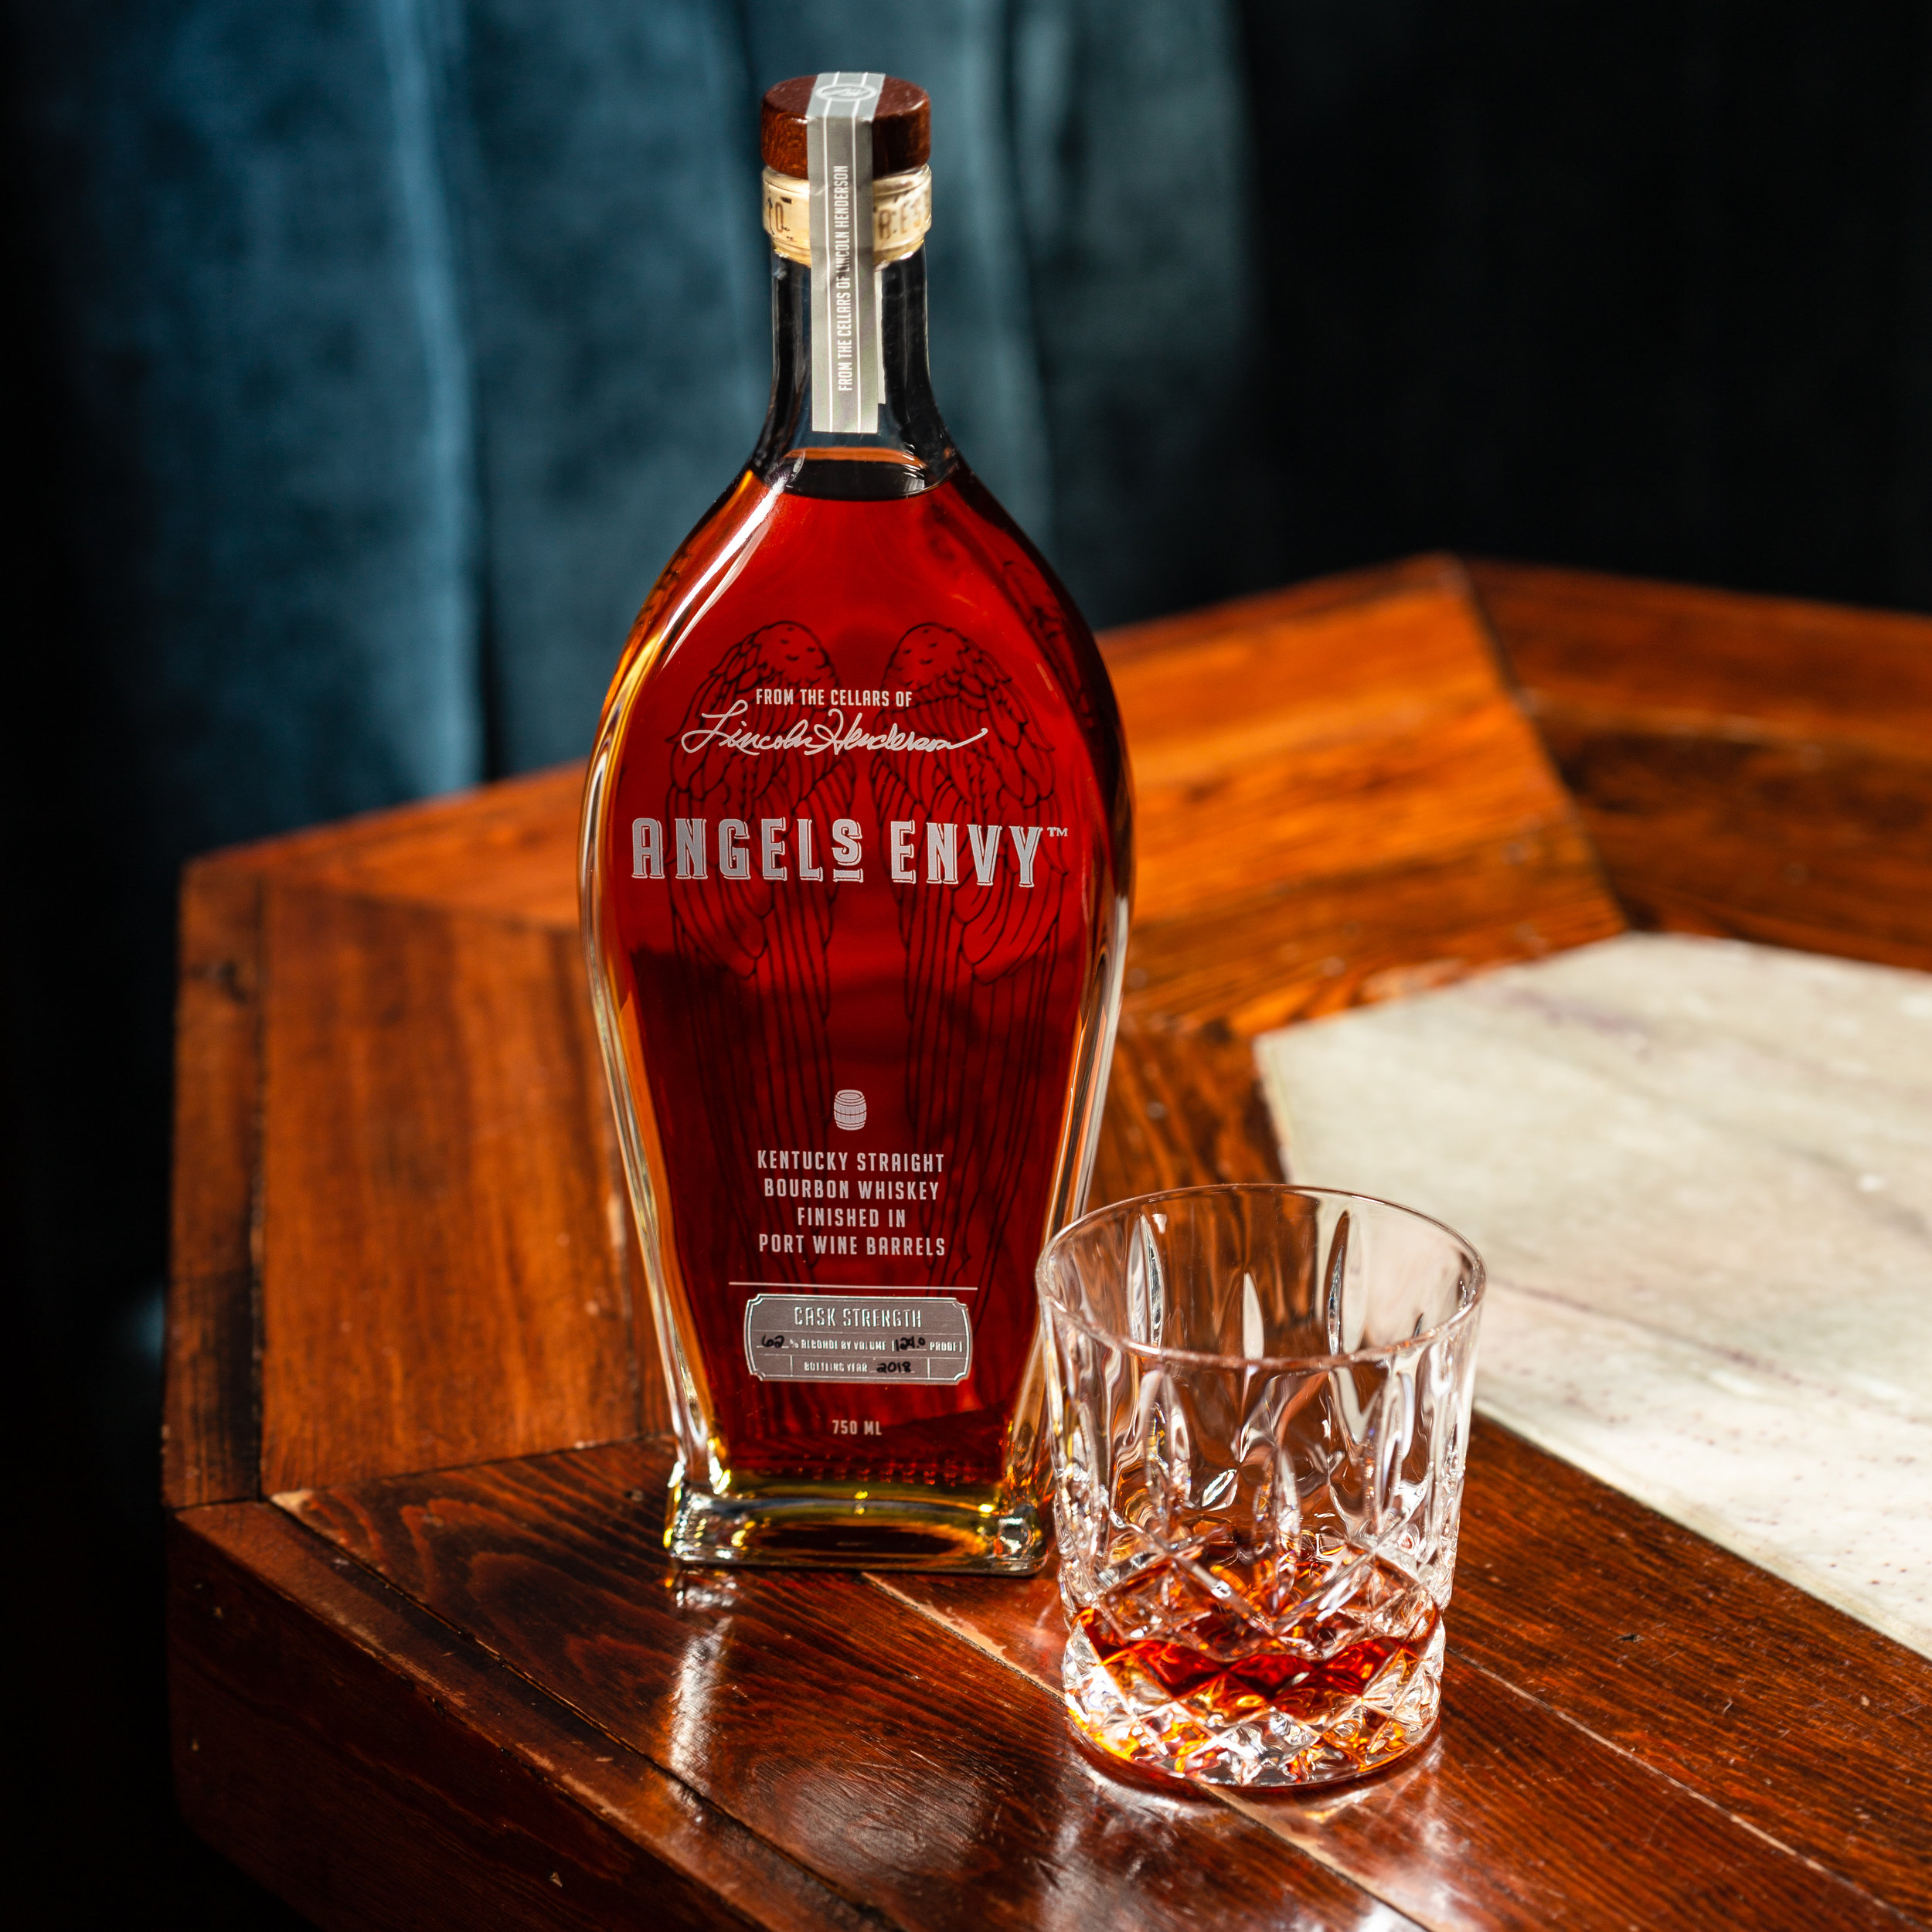 Angels Envy Cask Strength Bourbon